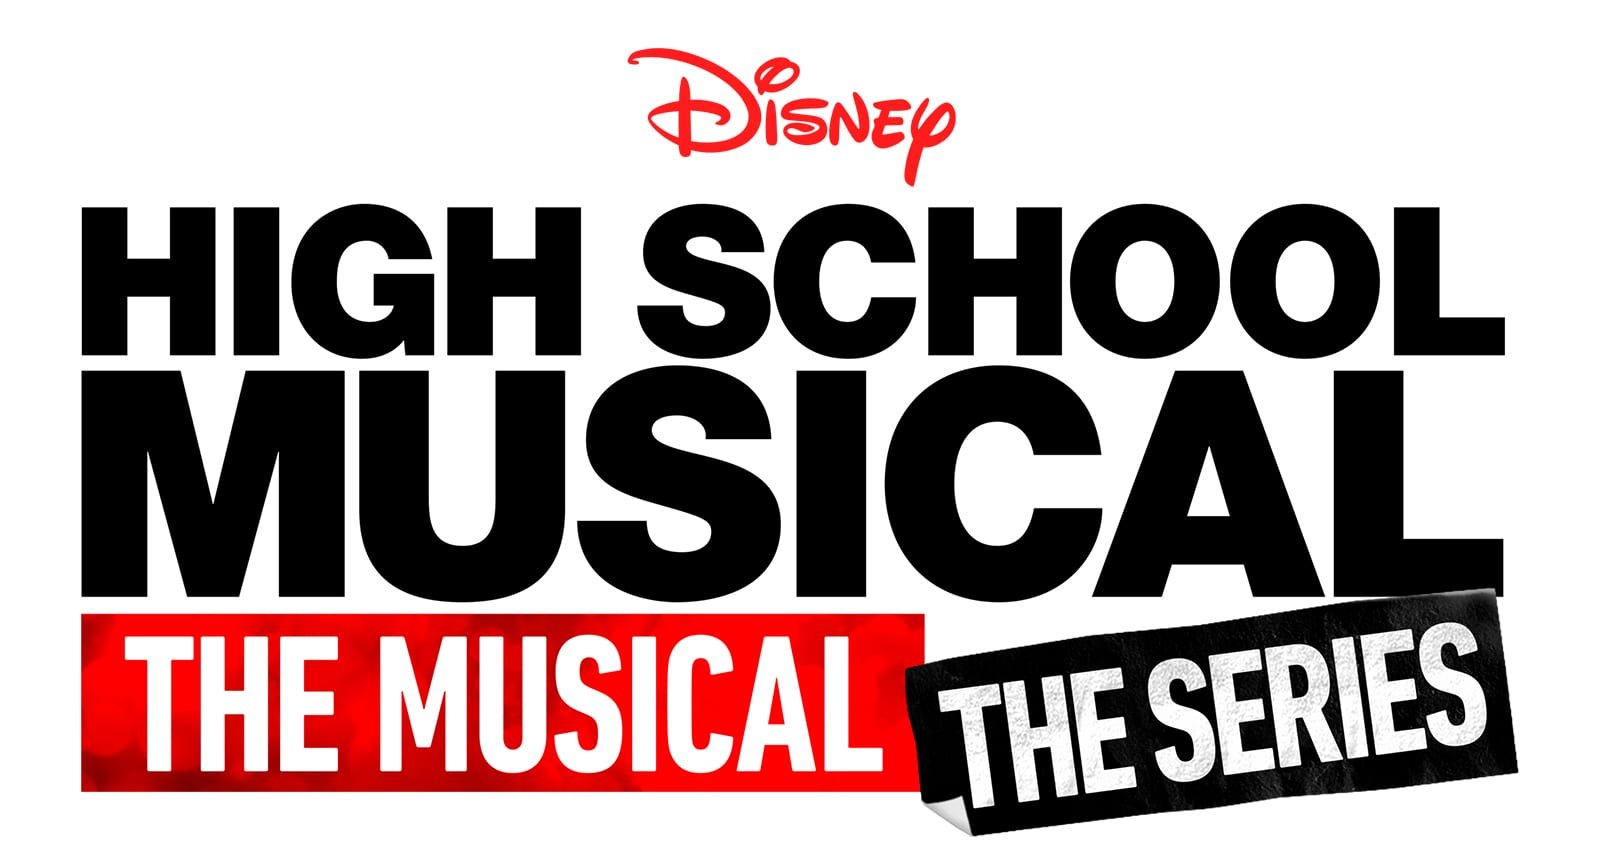 HSM The Musical The Series logo